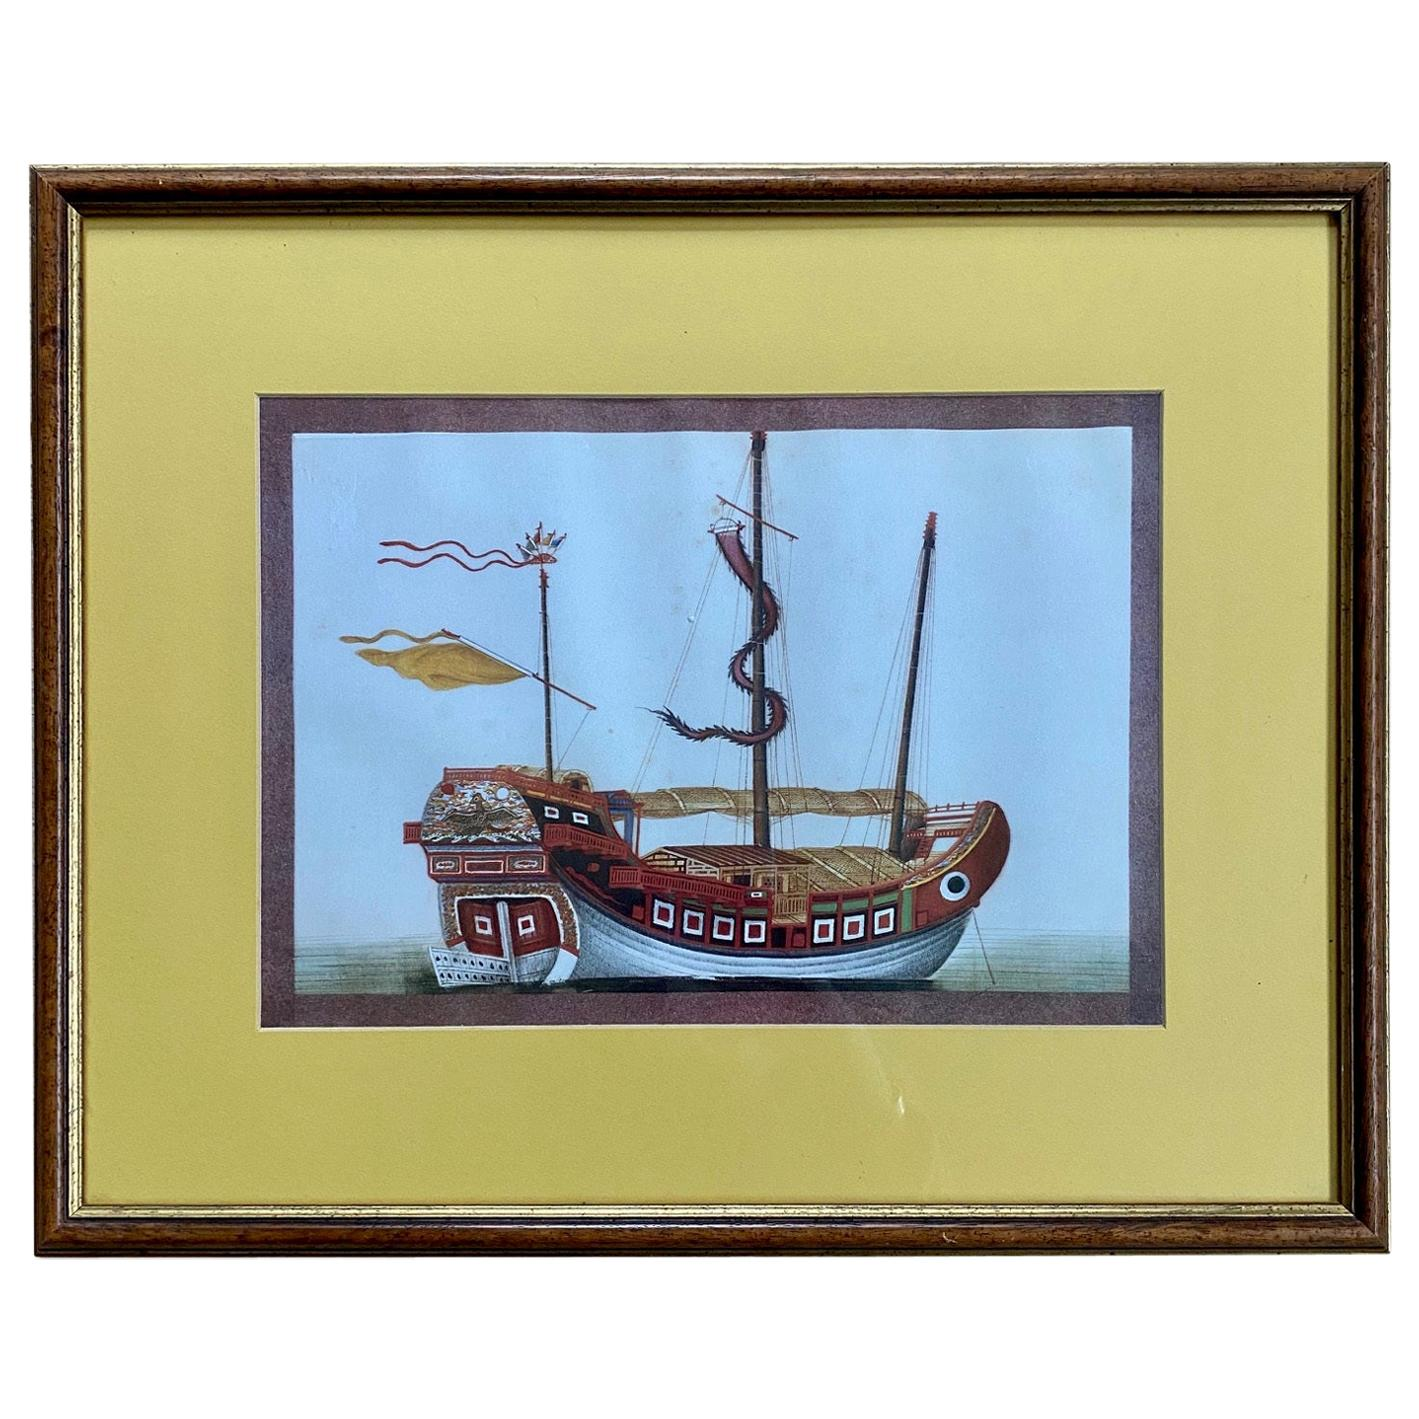 19th Century Chinese Export Pith Painting of a Junk